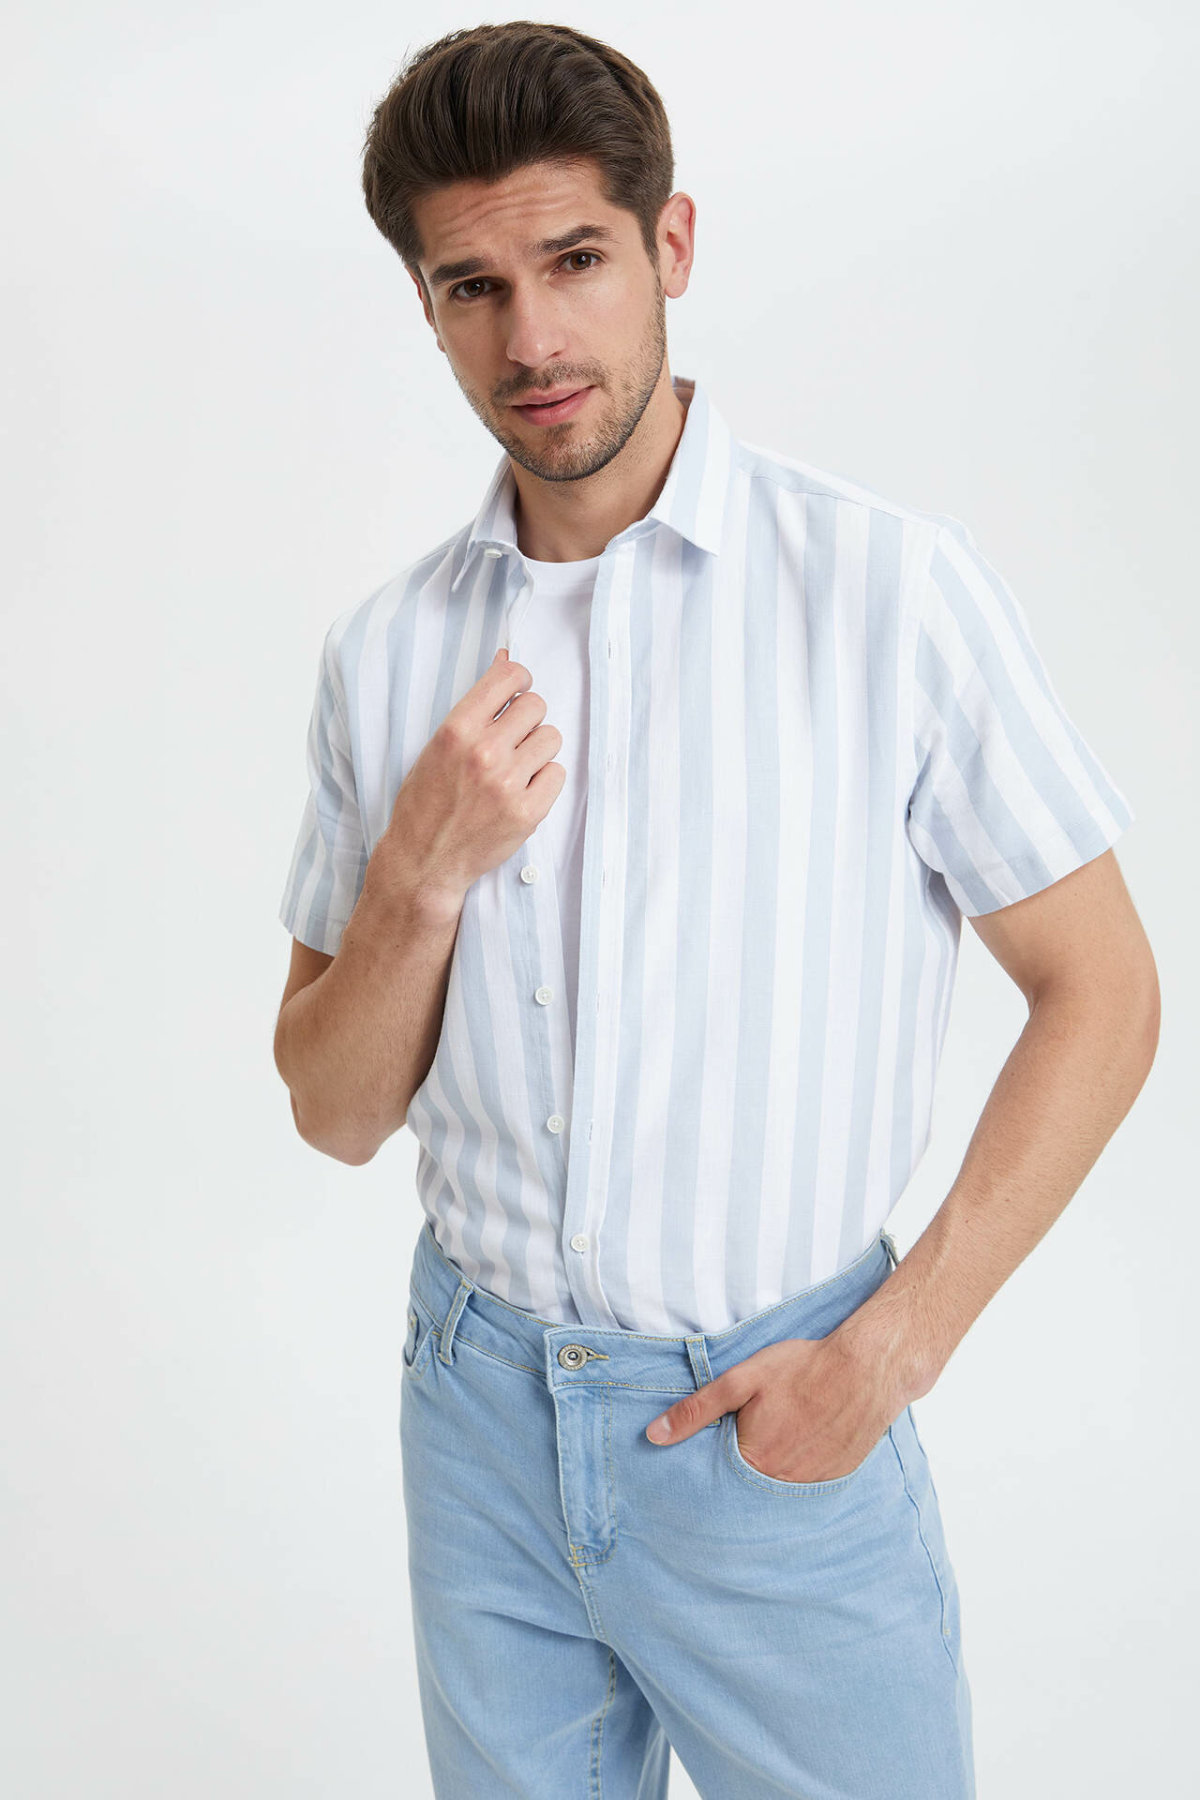 DeFacto Men Simple Casual Light Striped Short Shirts Lapel Collar Male Shirts Cotton Male Lapel CollarTops New - L8878AZ19SM-L8878AZ19SM